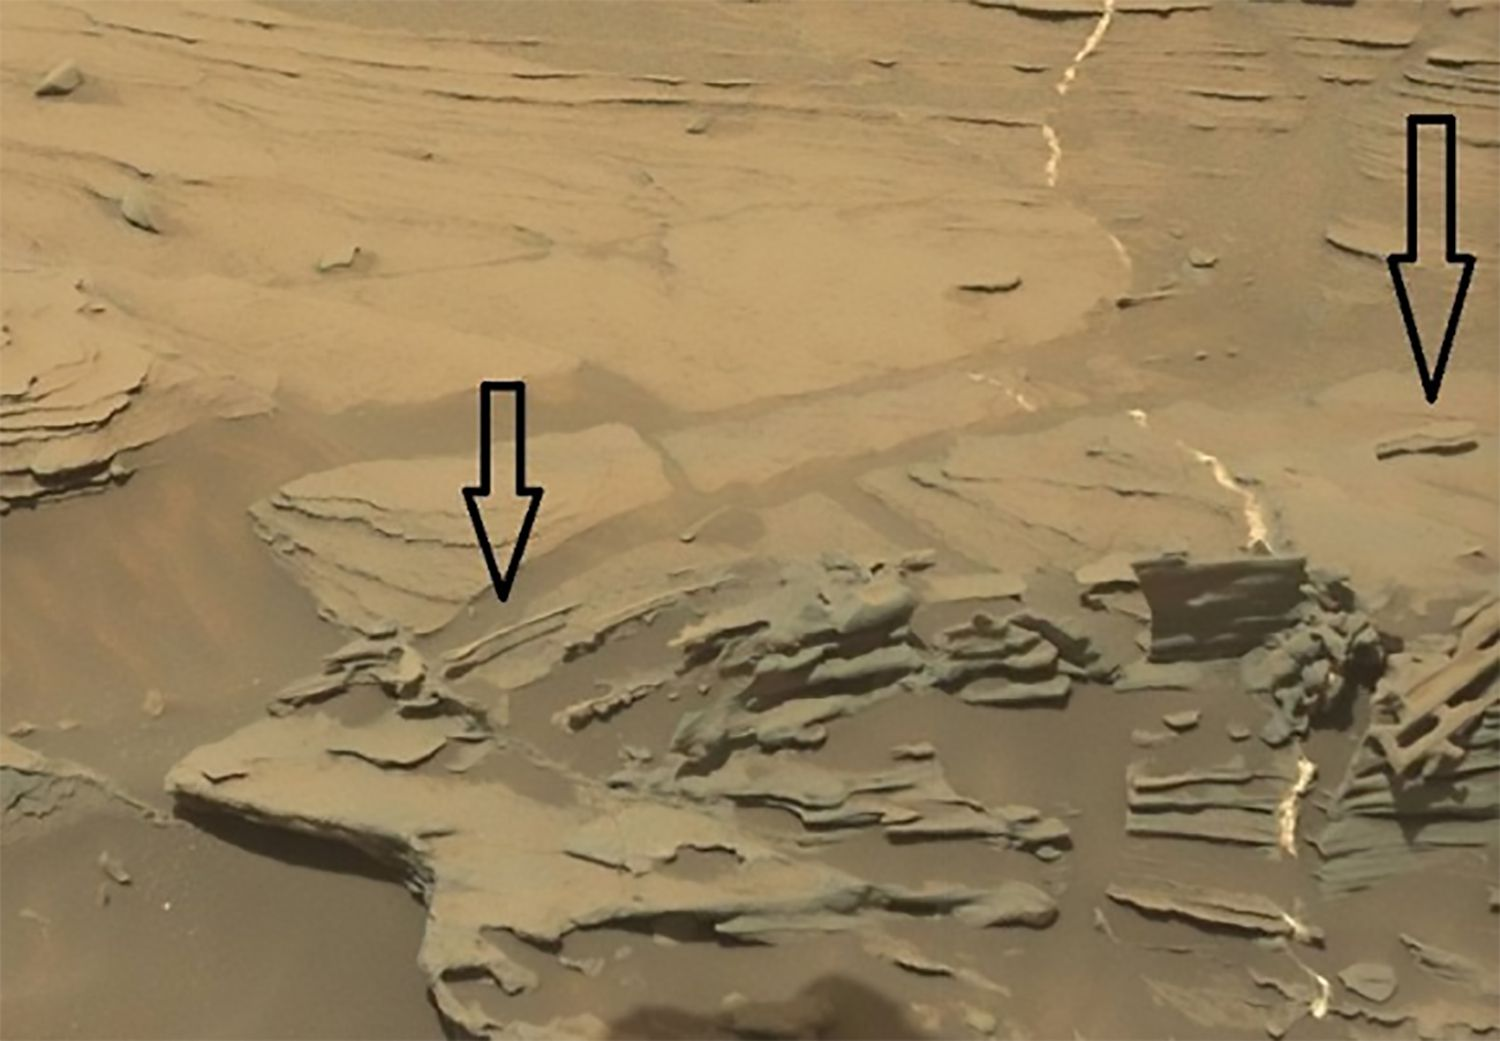 Photographs Of Mysterious Mars Anomalies